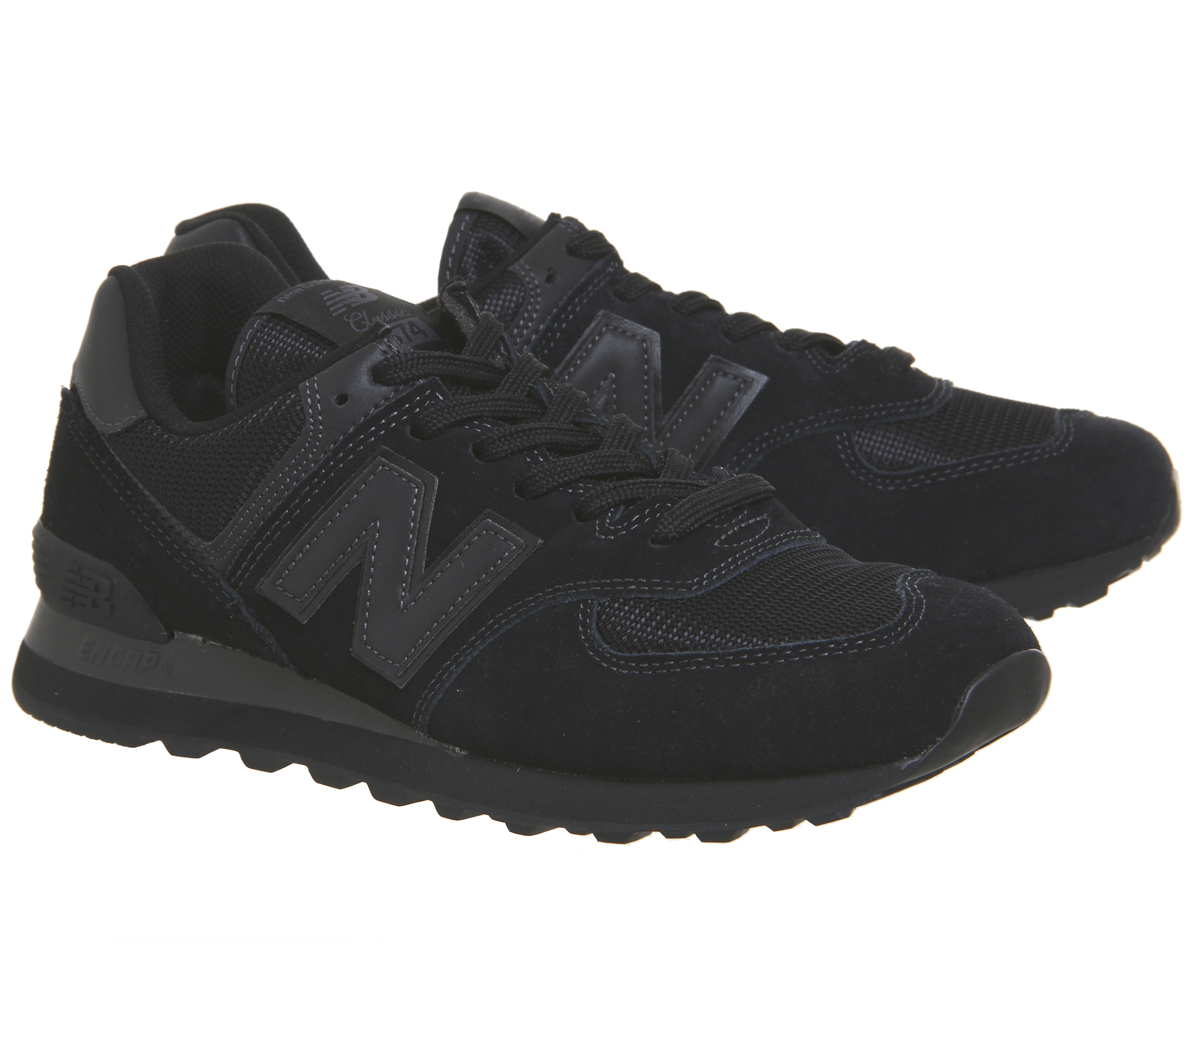 New Balance 574 Trainers BLACK Schuhes Trainers Schuhes BLACK ac6f89